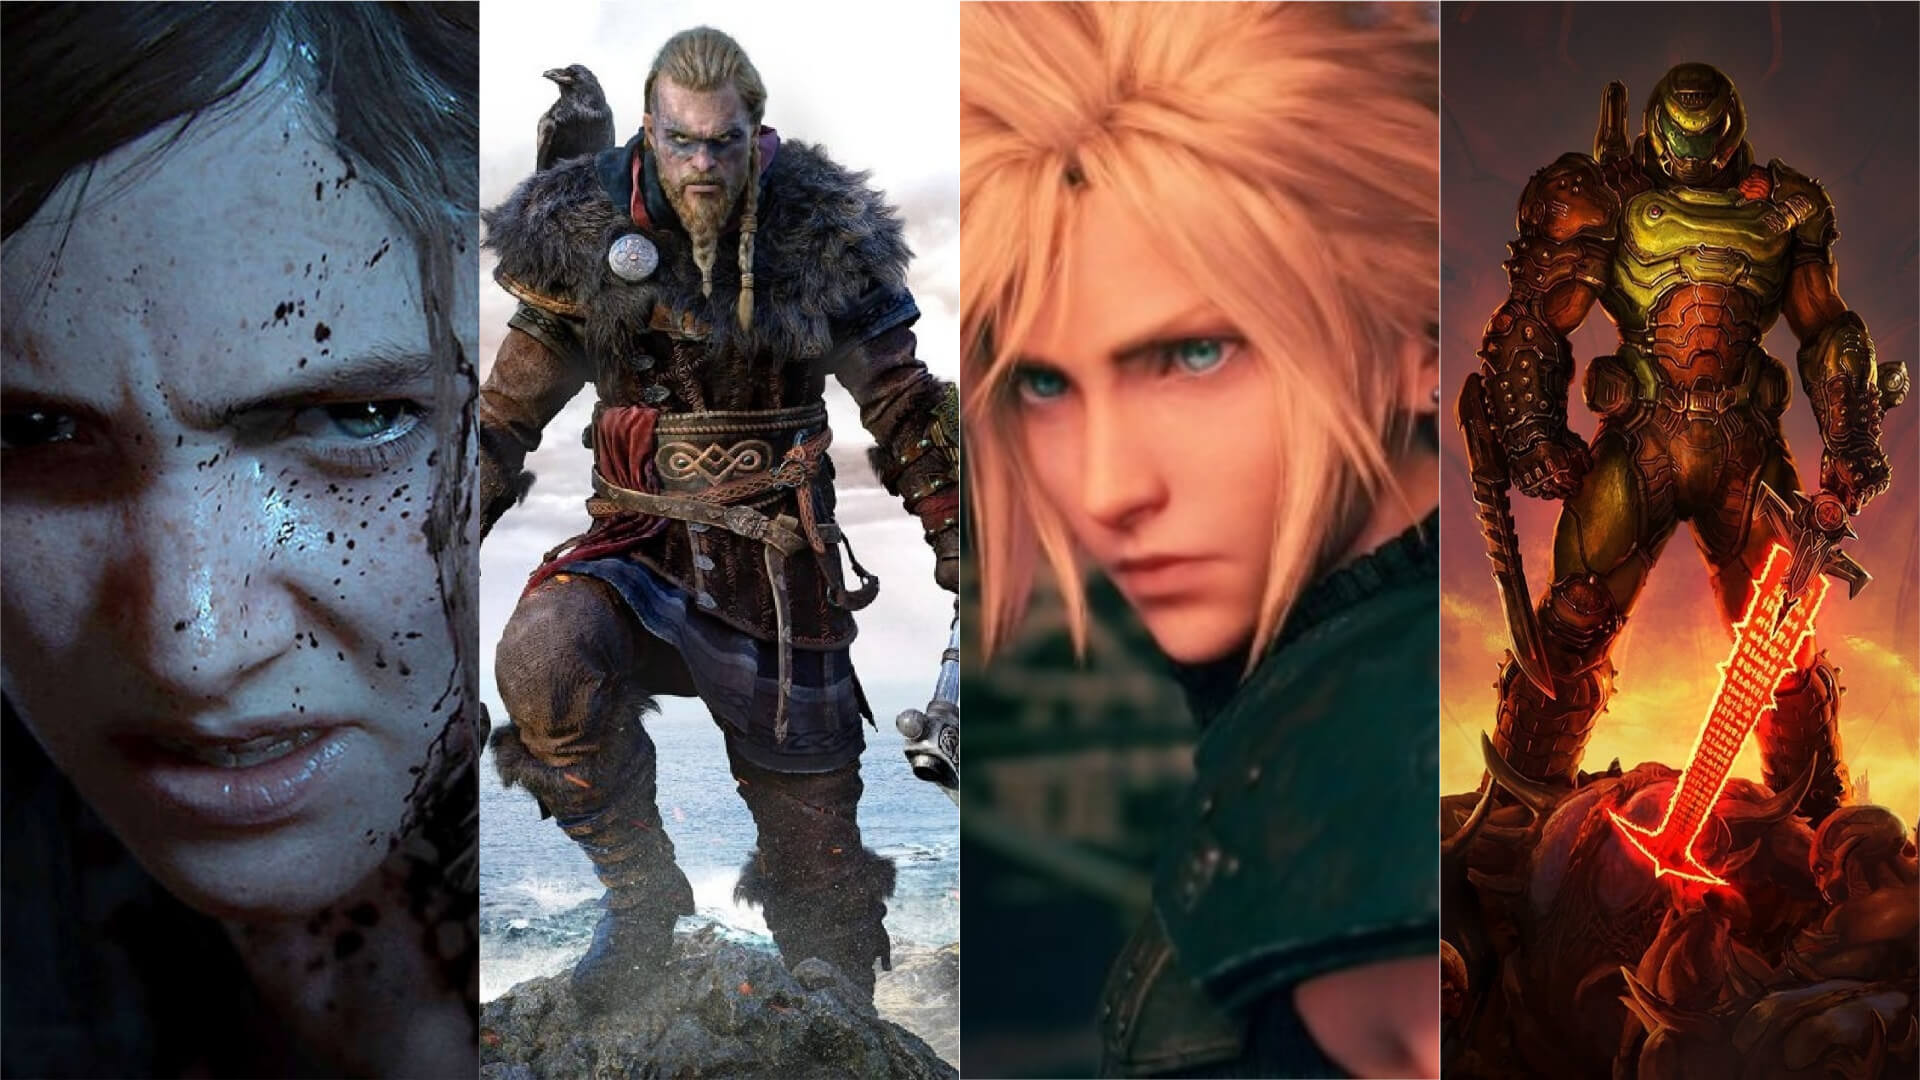 Best Video Games of 2020: Our Top Picks